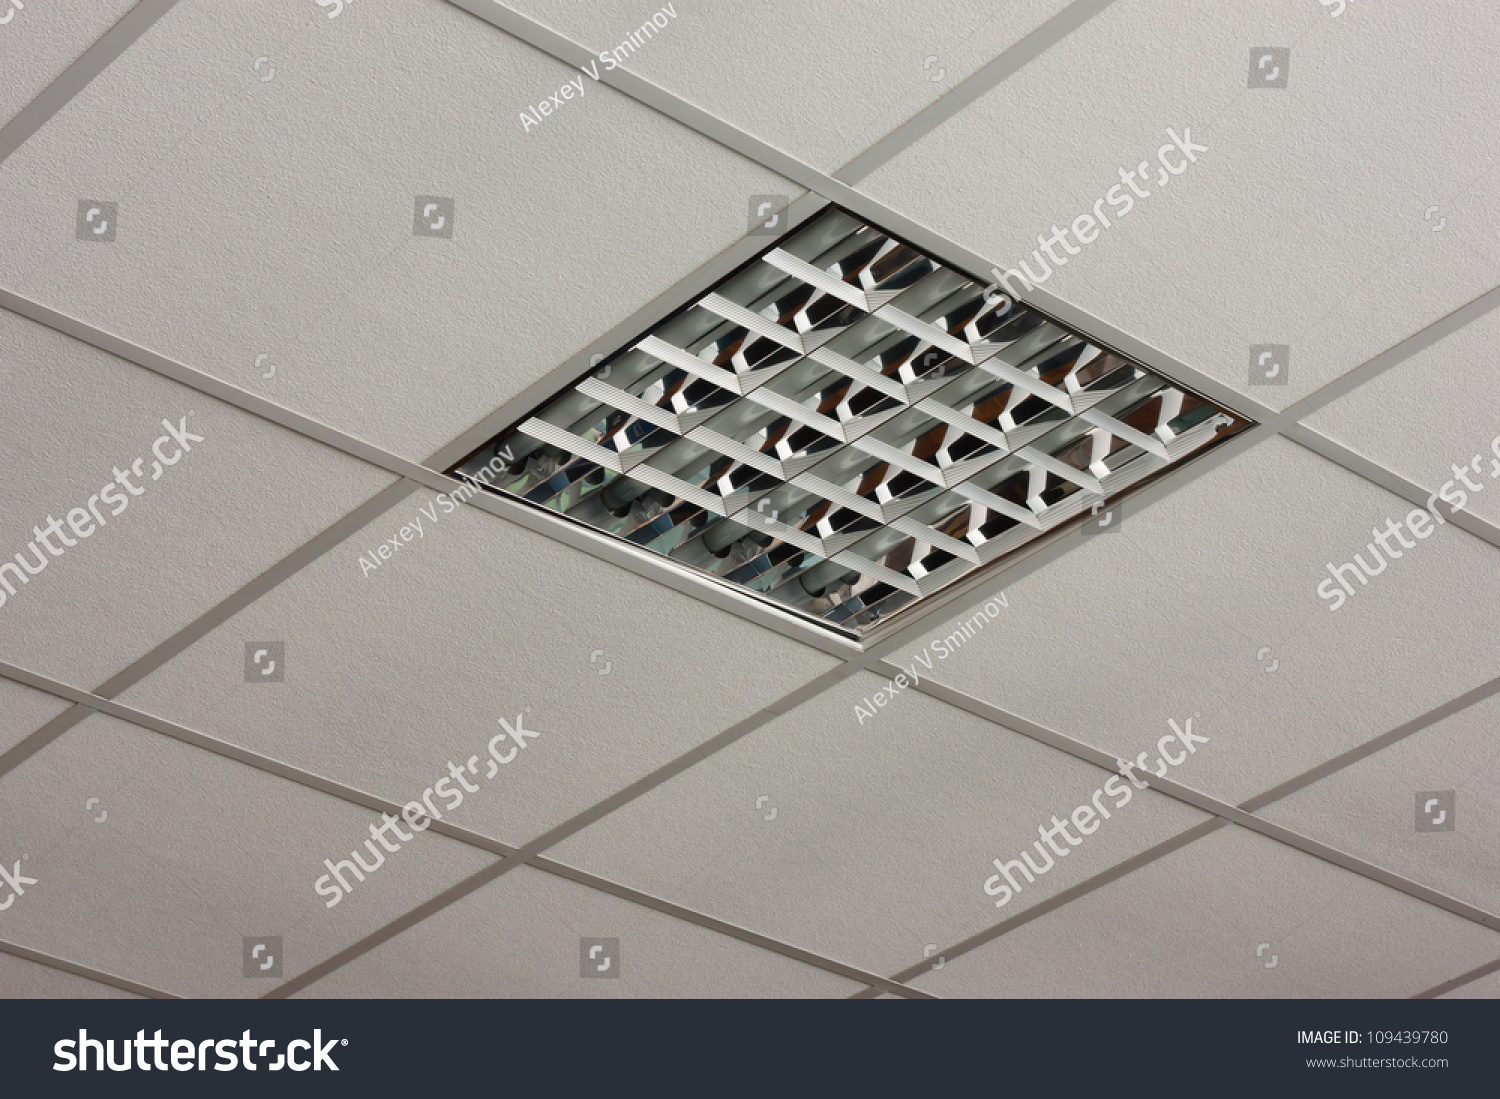 Awesome Fluorescent Office Ceiling Lamp Built In On The White Ceiling Close Up View